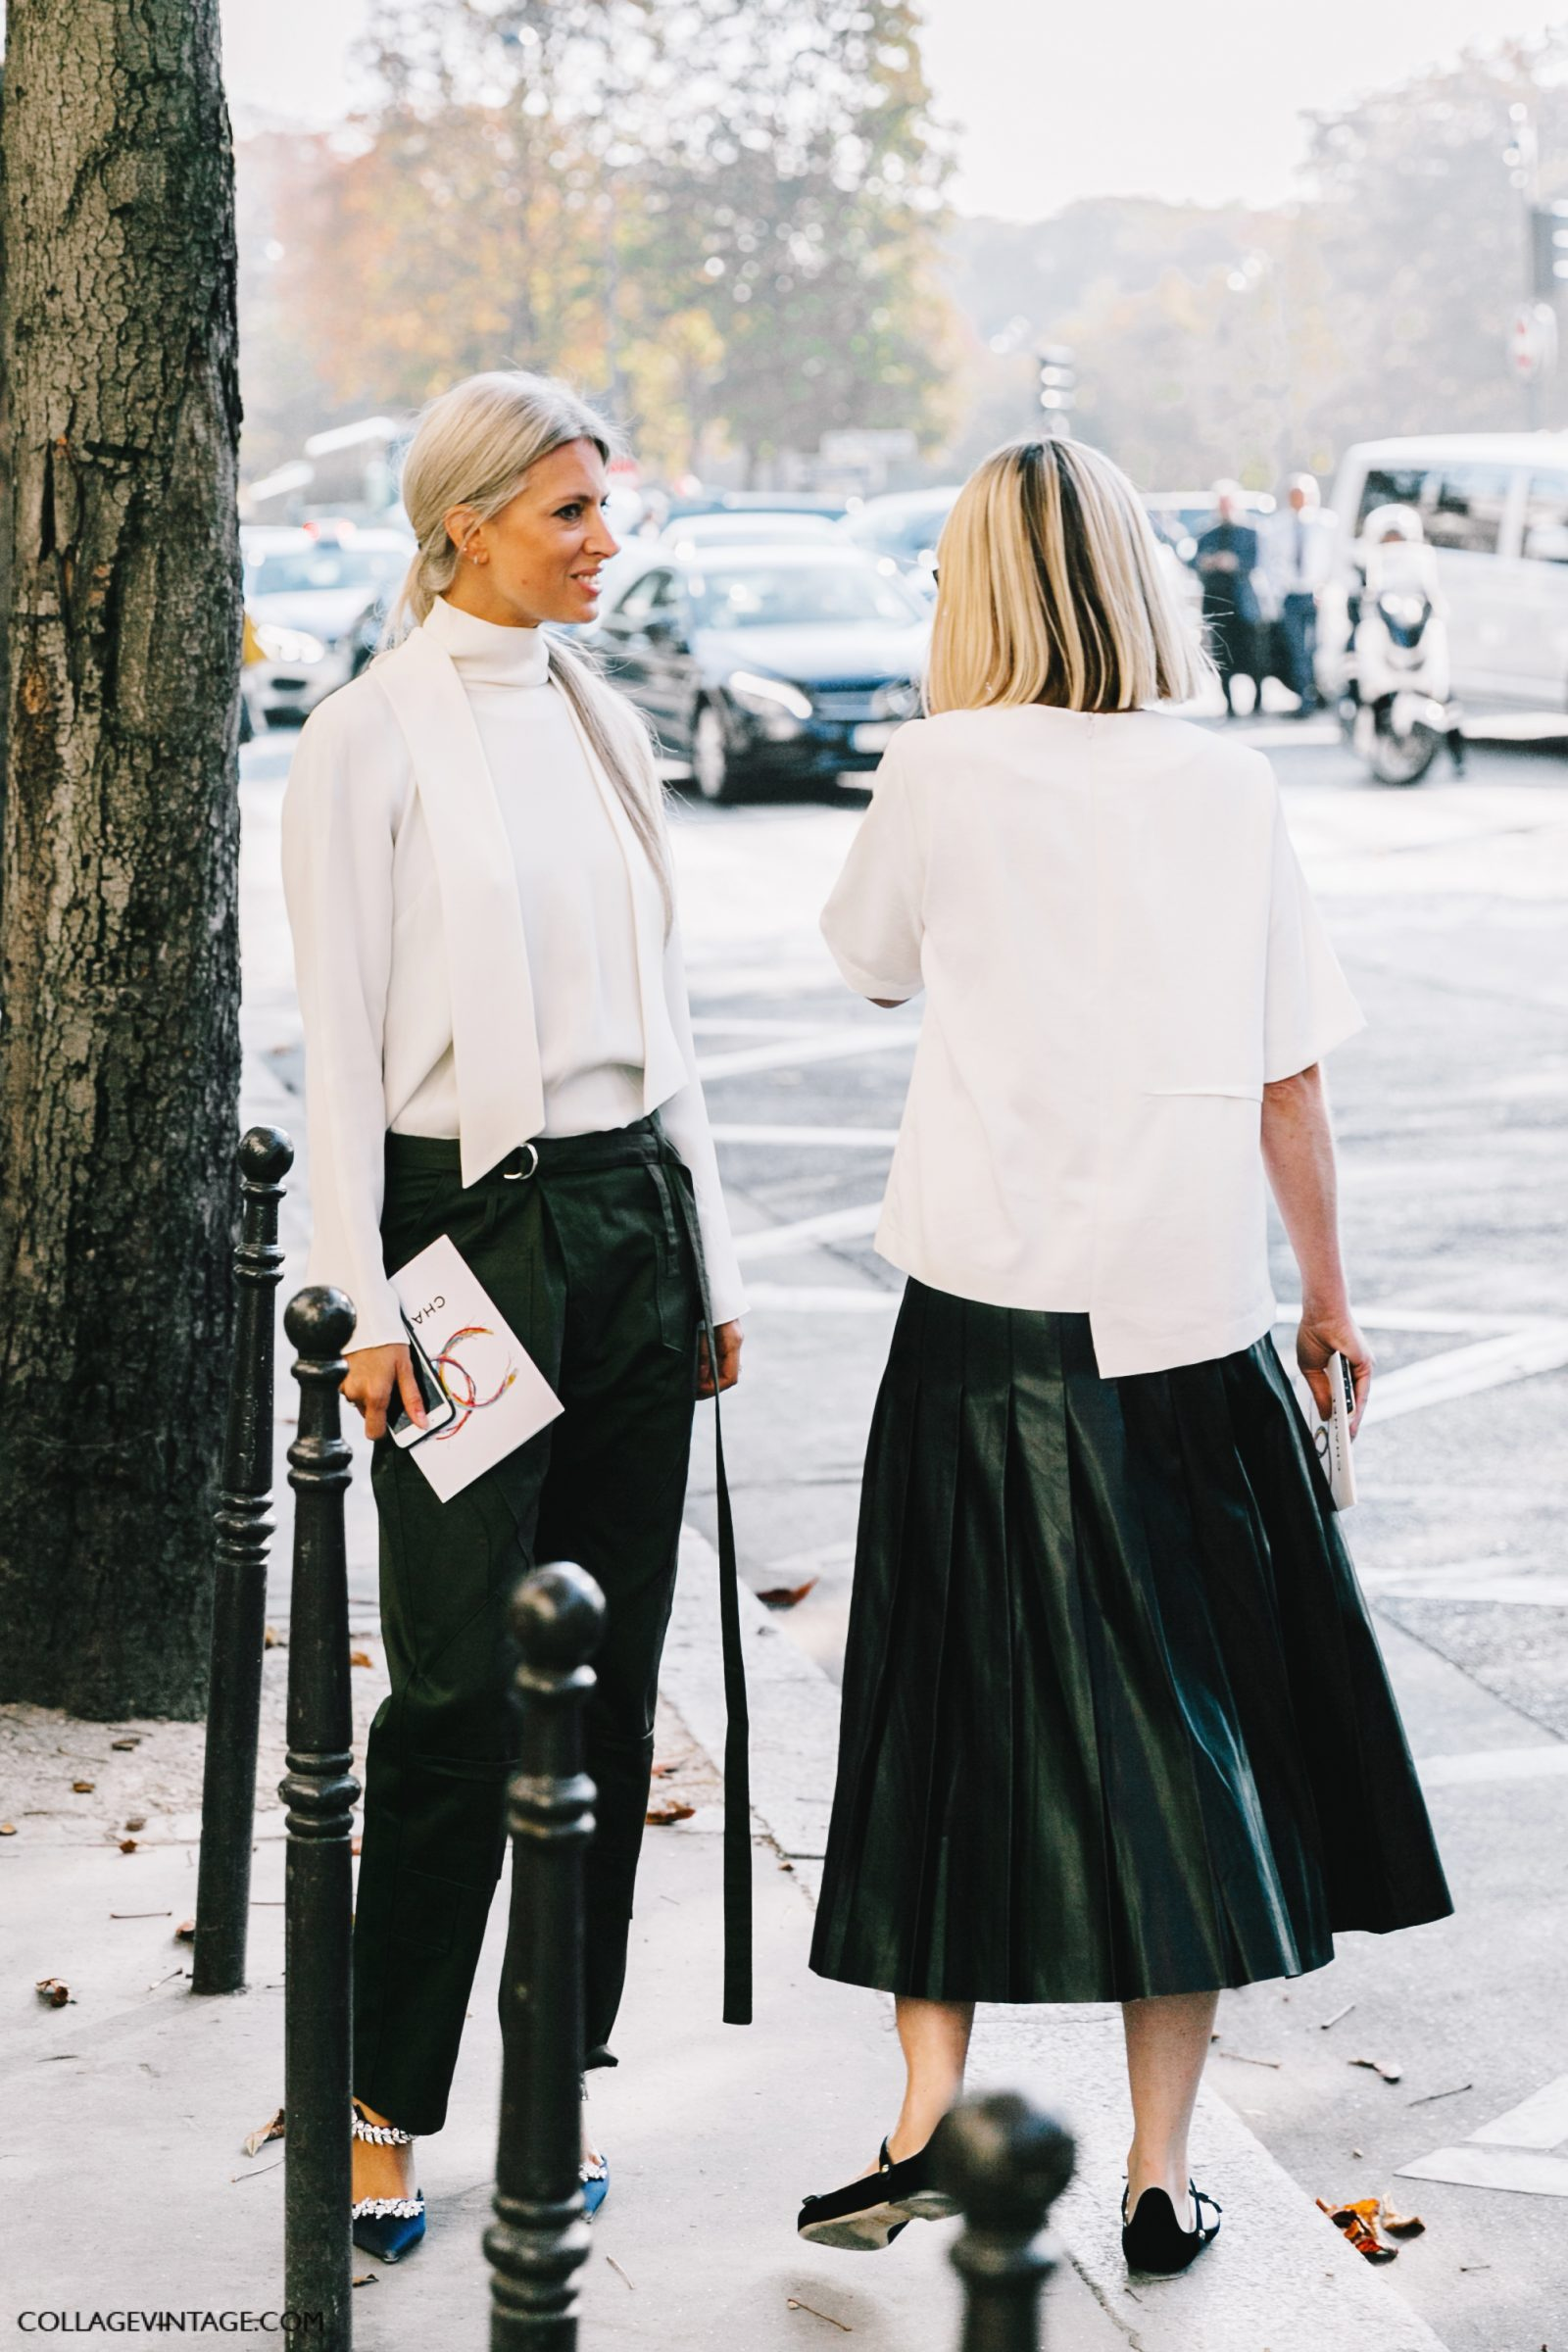 pfw-paris_fashion_week_ss17-street_style-outfits-collage_vintage-chanel-ellery-25